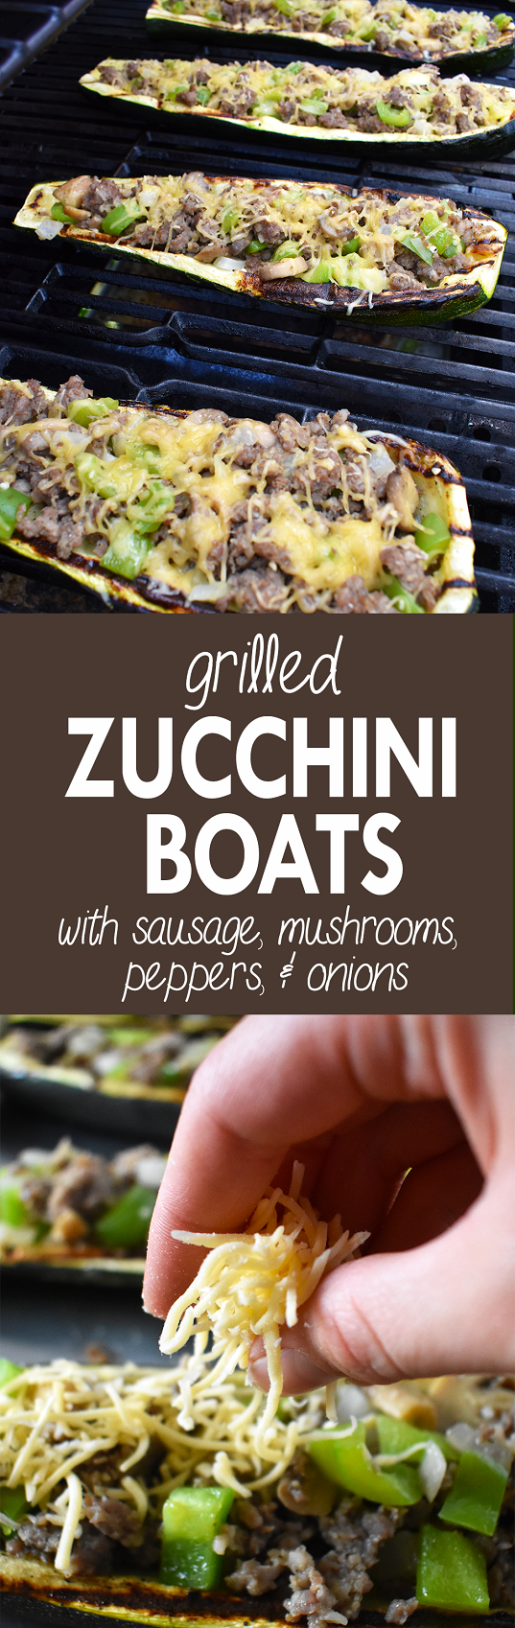 Grilled Zucchini Boats with Sausage, Mushrooms, Peppers, & Onions | The Small Town Foodie